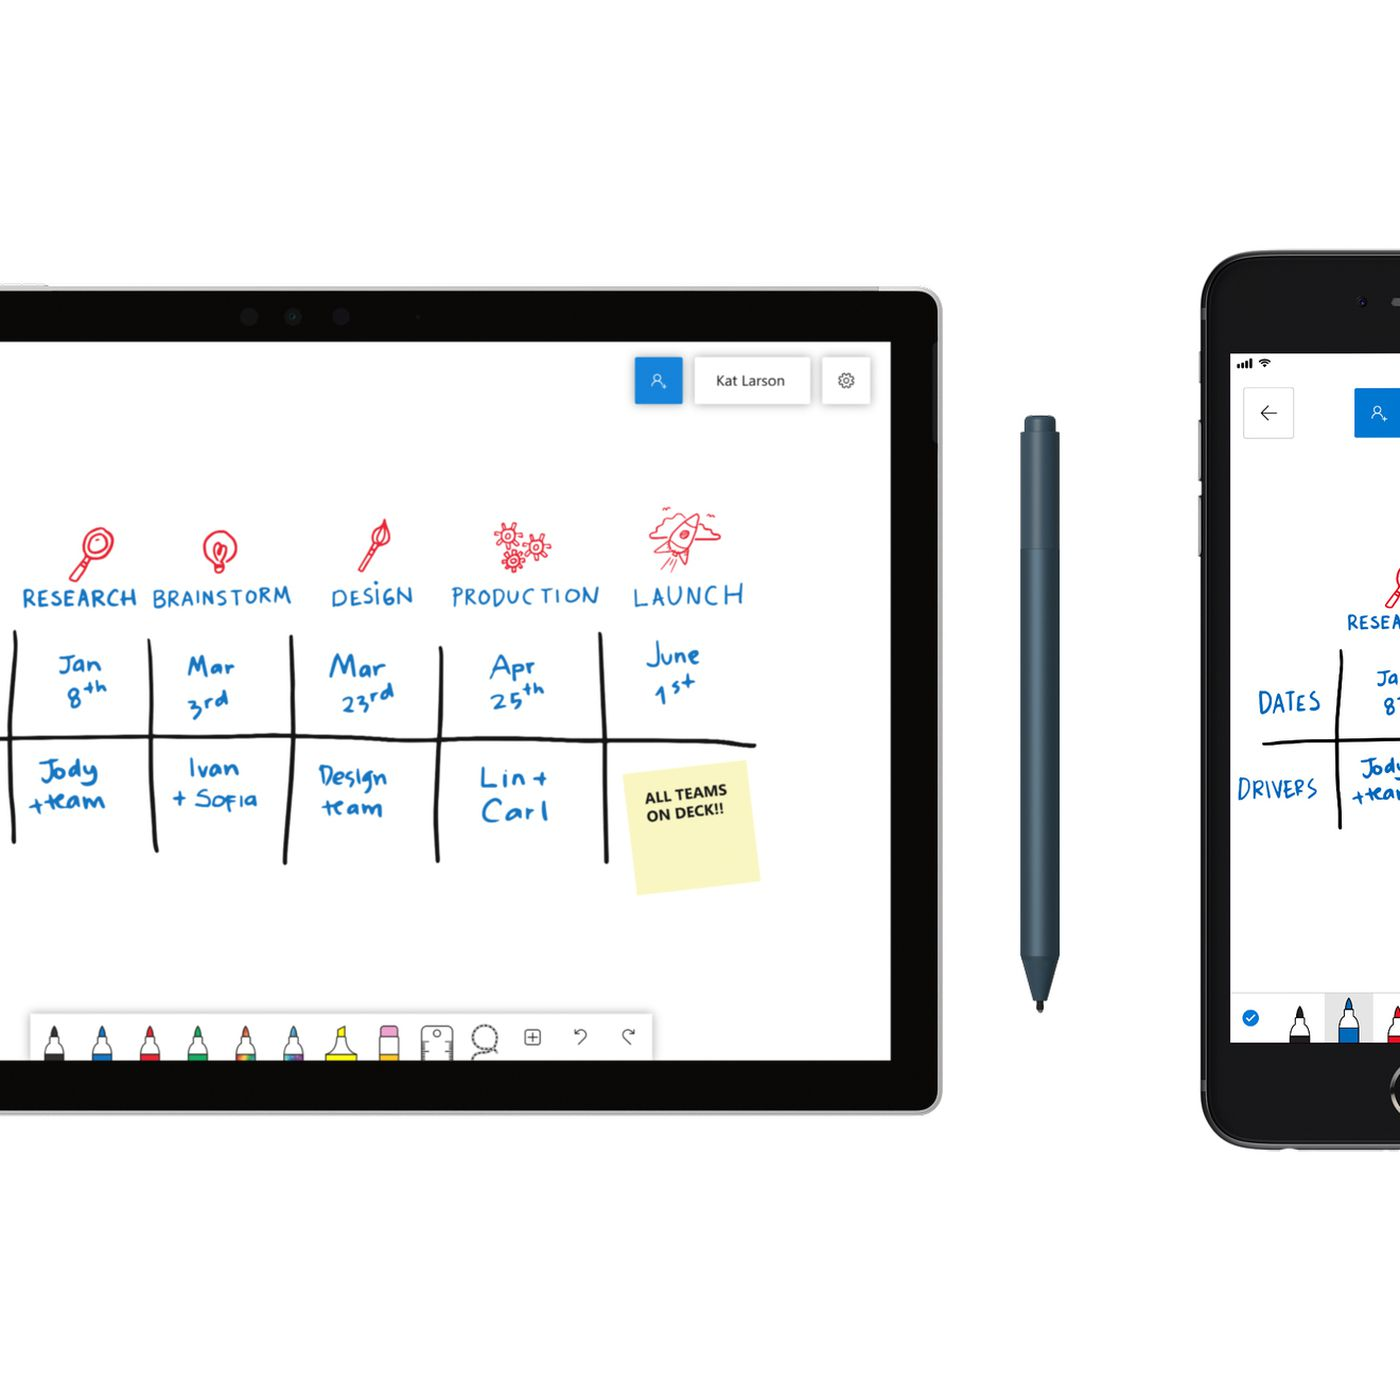 theverge.com - Tom Warren - Microsoft's collaborative Whiteboard app is coming to Windows 10, iOS, and the web